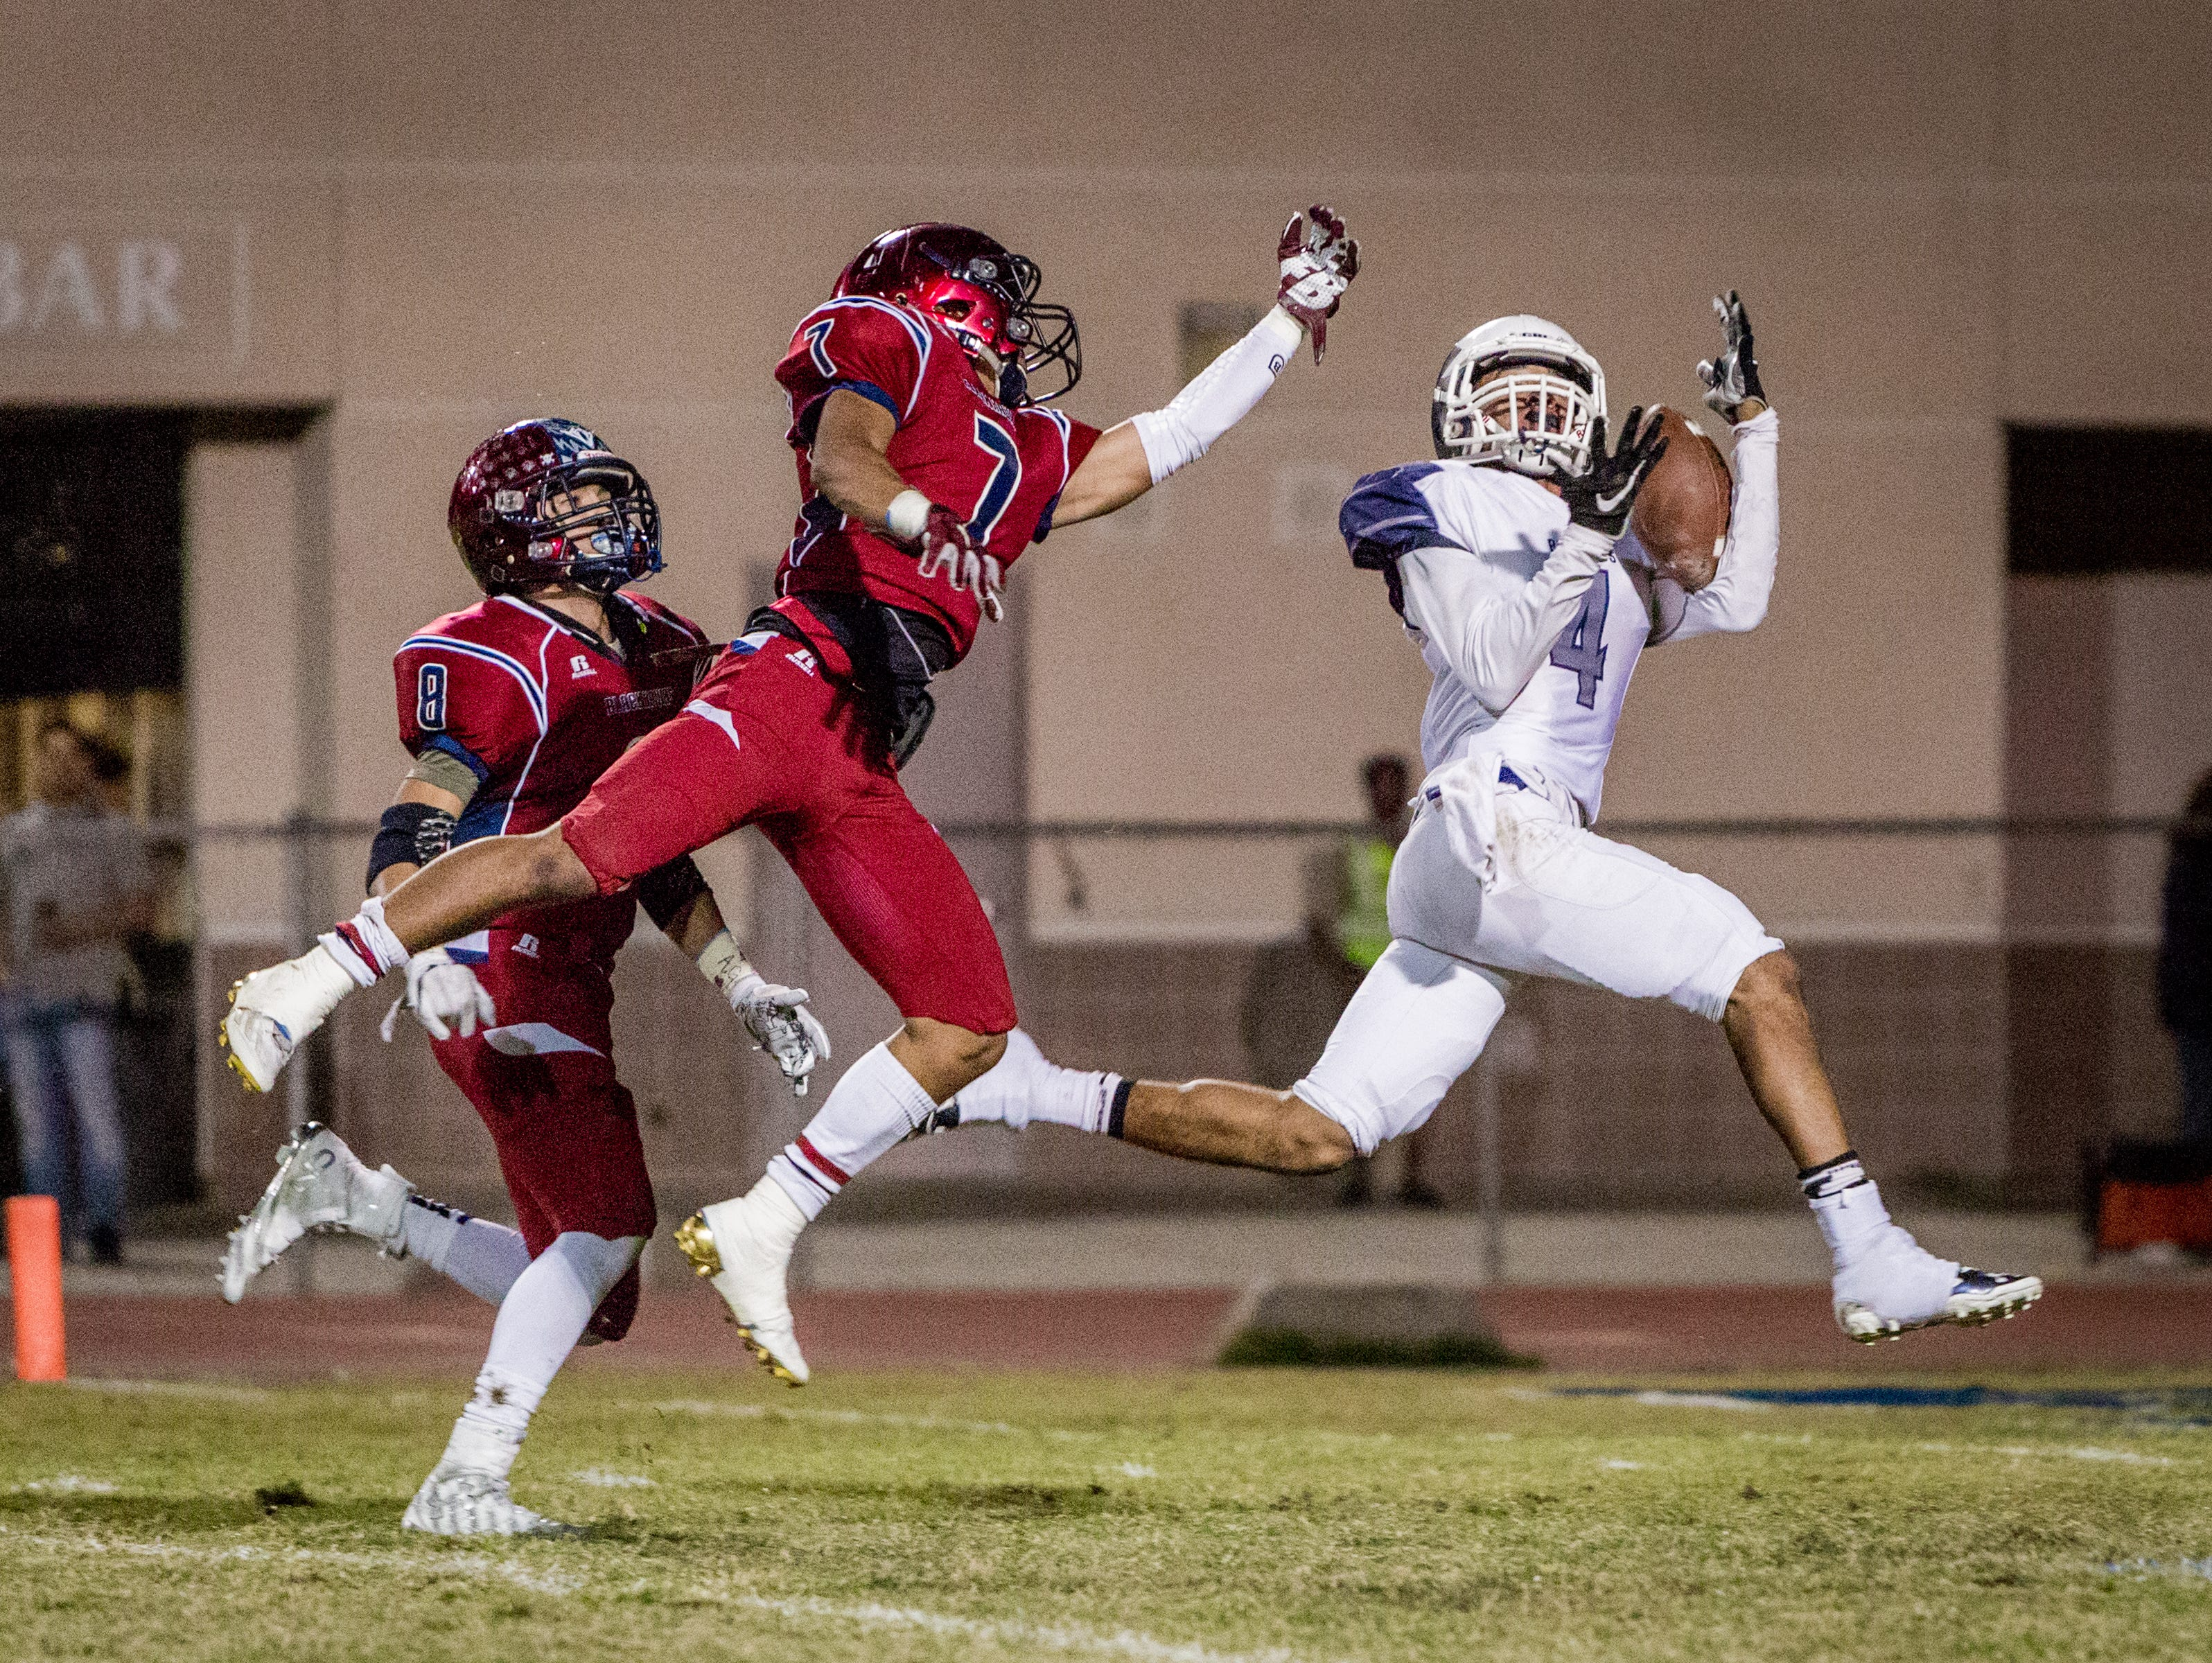 Redlands wideout Jakobie James catches the first touchdown of the night.